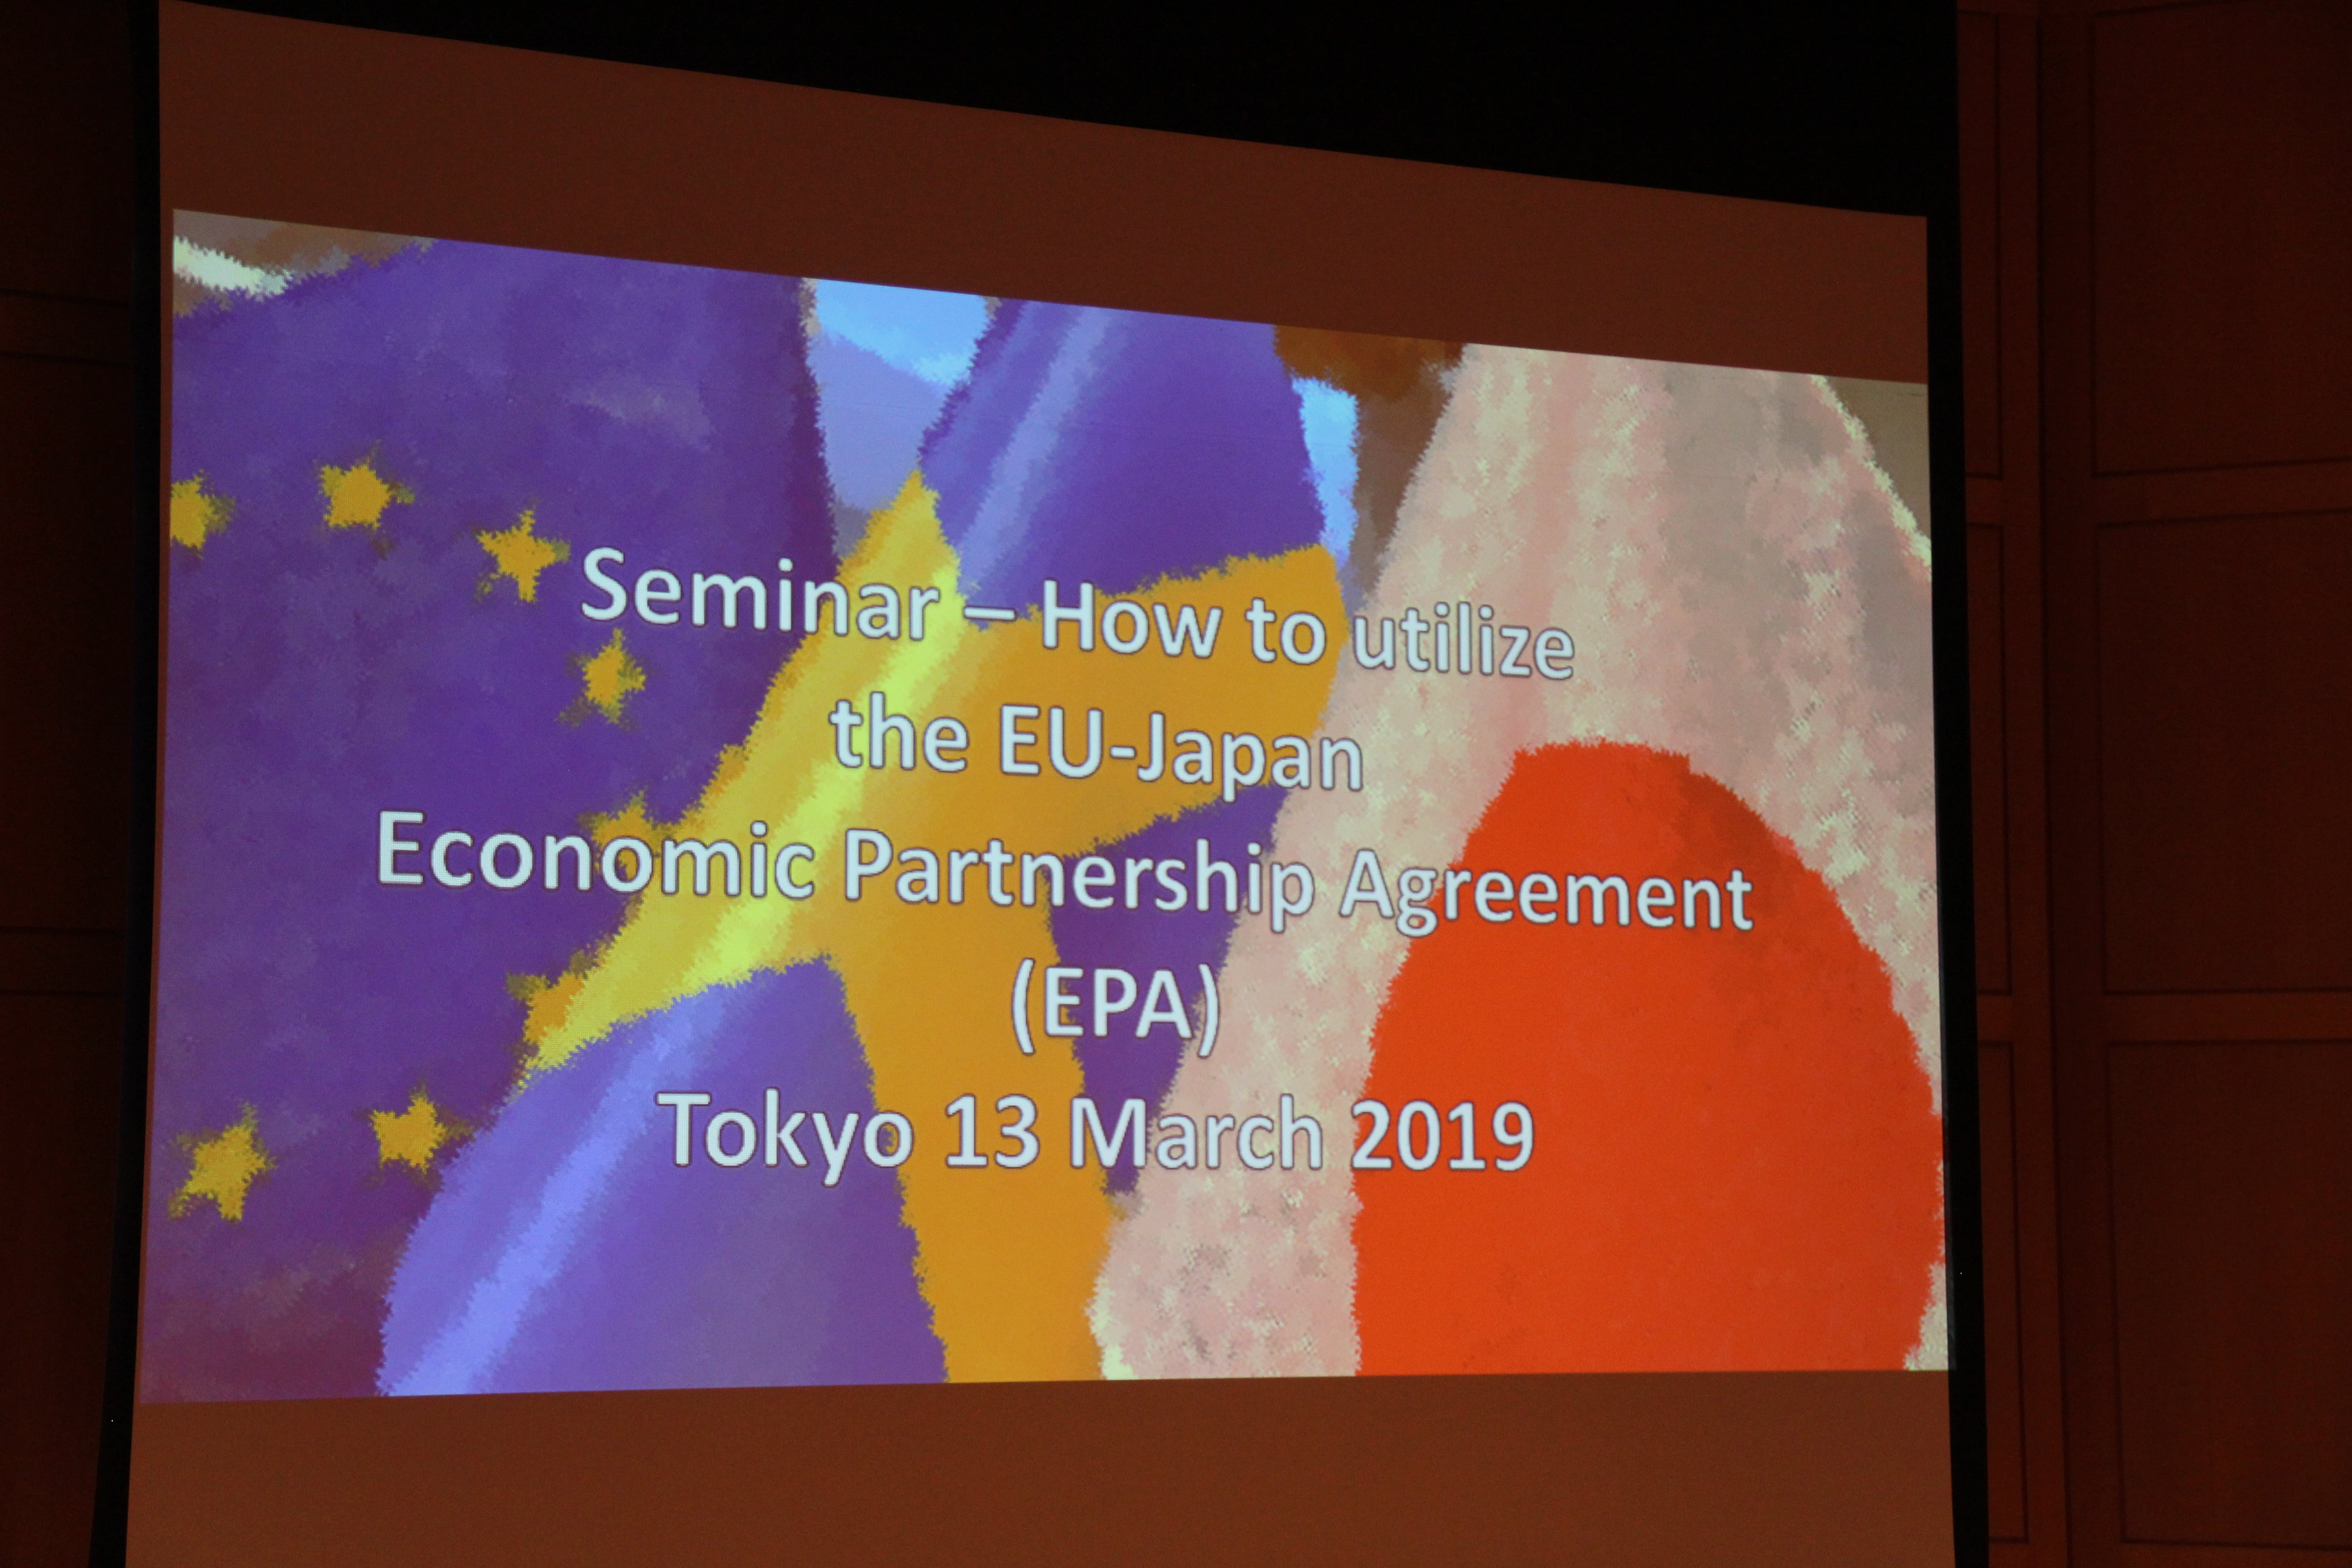 Report: How to Utilize the EU-Japan Economic Partnership Agreement